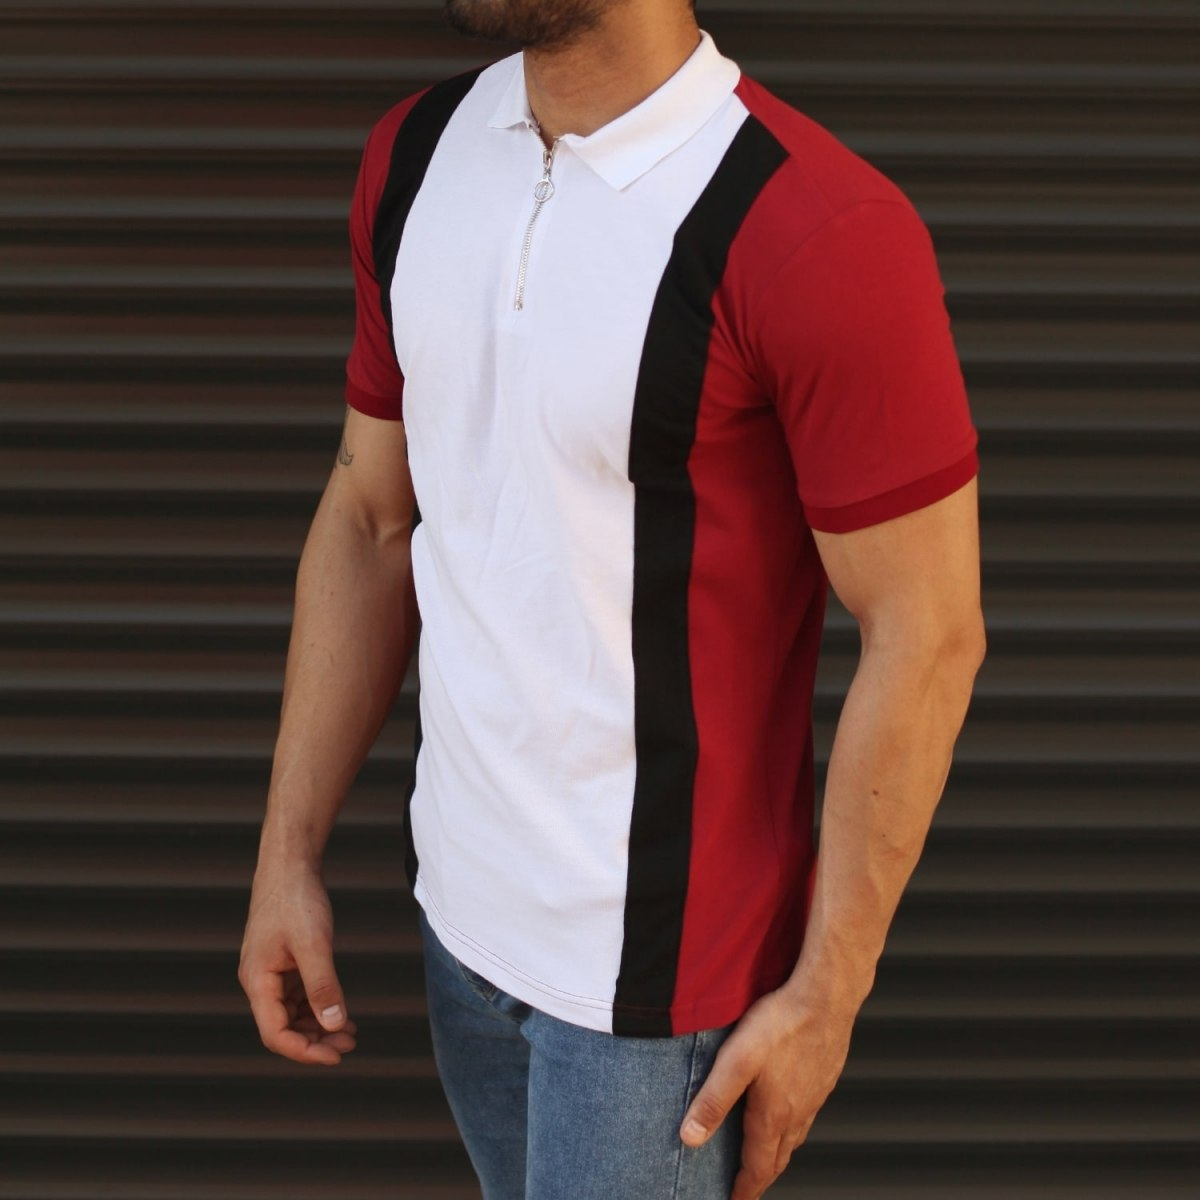 Men's Casual Muscle Fit Polo T-Shirt White & Red Mv Premium Brand - 2